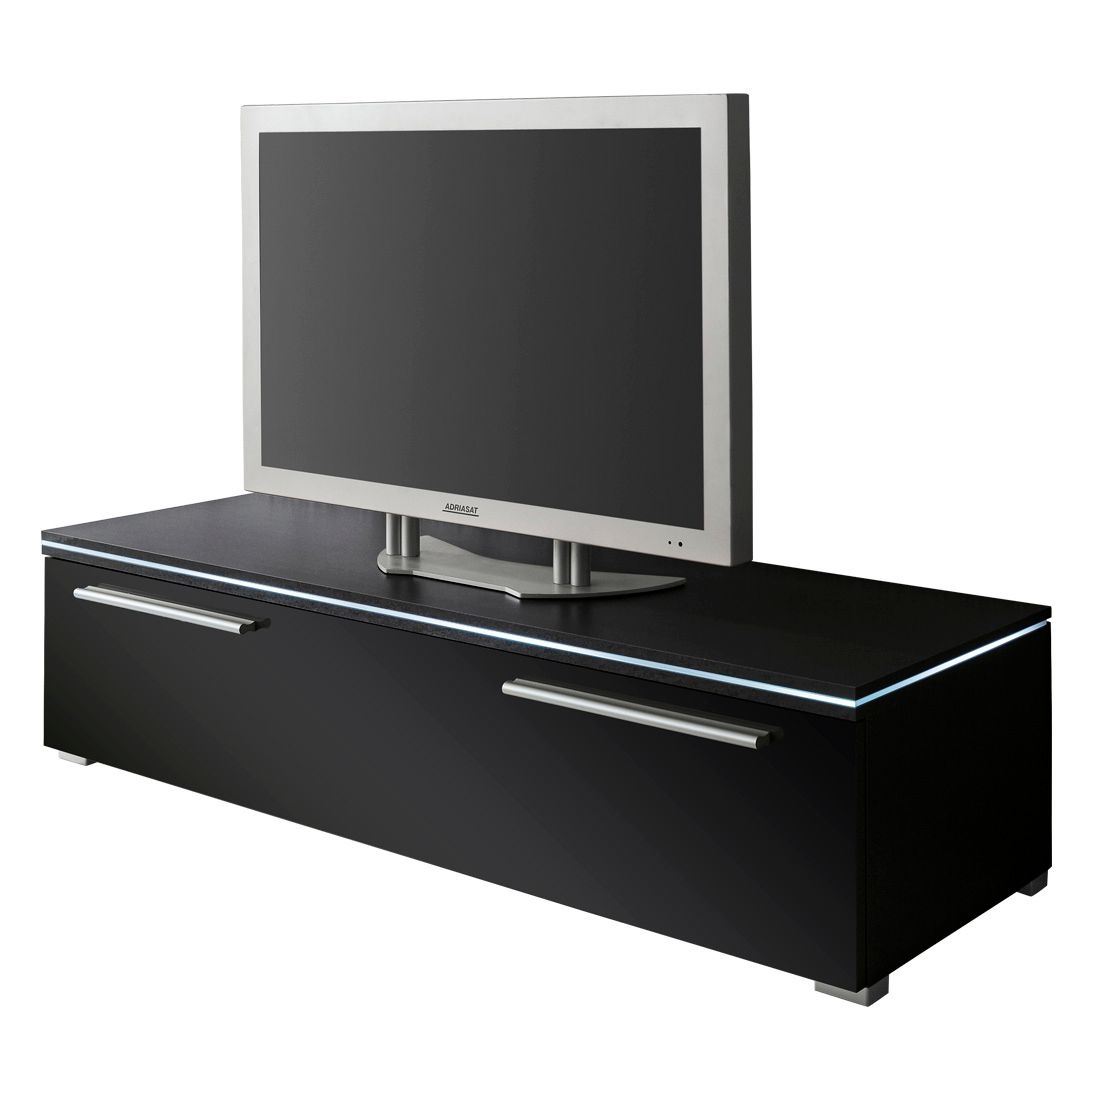 meuble tv profondeur 30 cm maison design. Black Bedroom Furniture Sets. Home Design Ideas